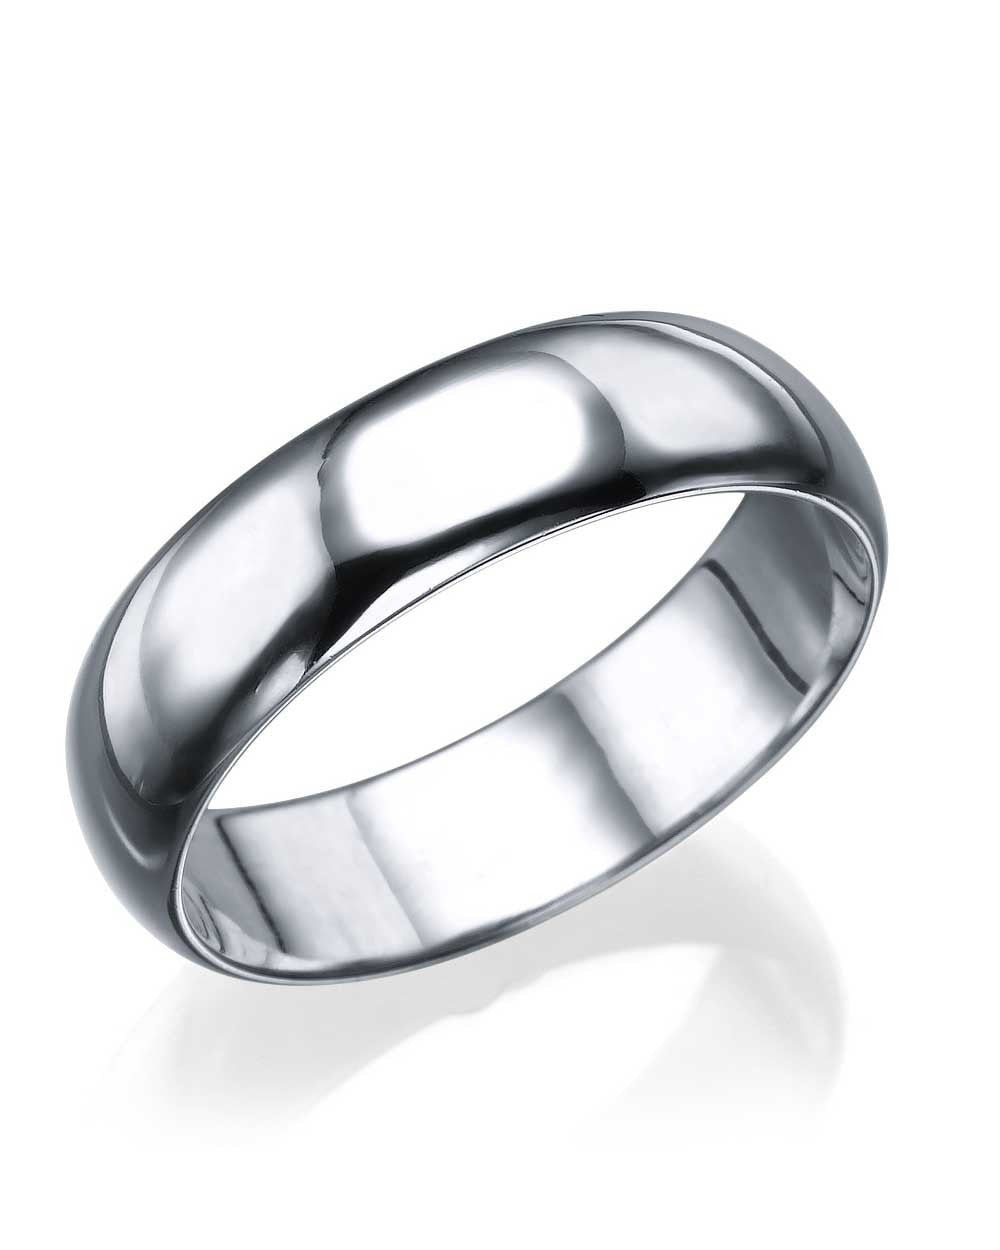 Wedding Rings Platinum Wedding Ring - 5.6mm Rounded Plain Band